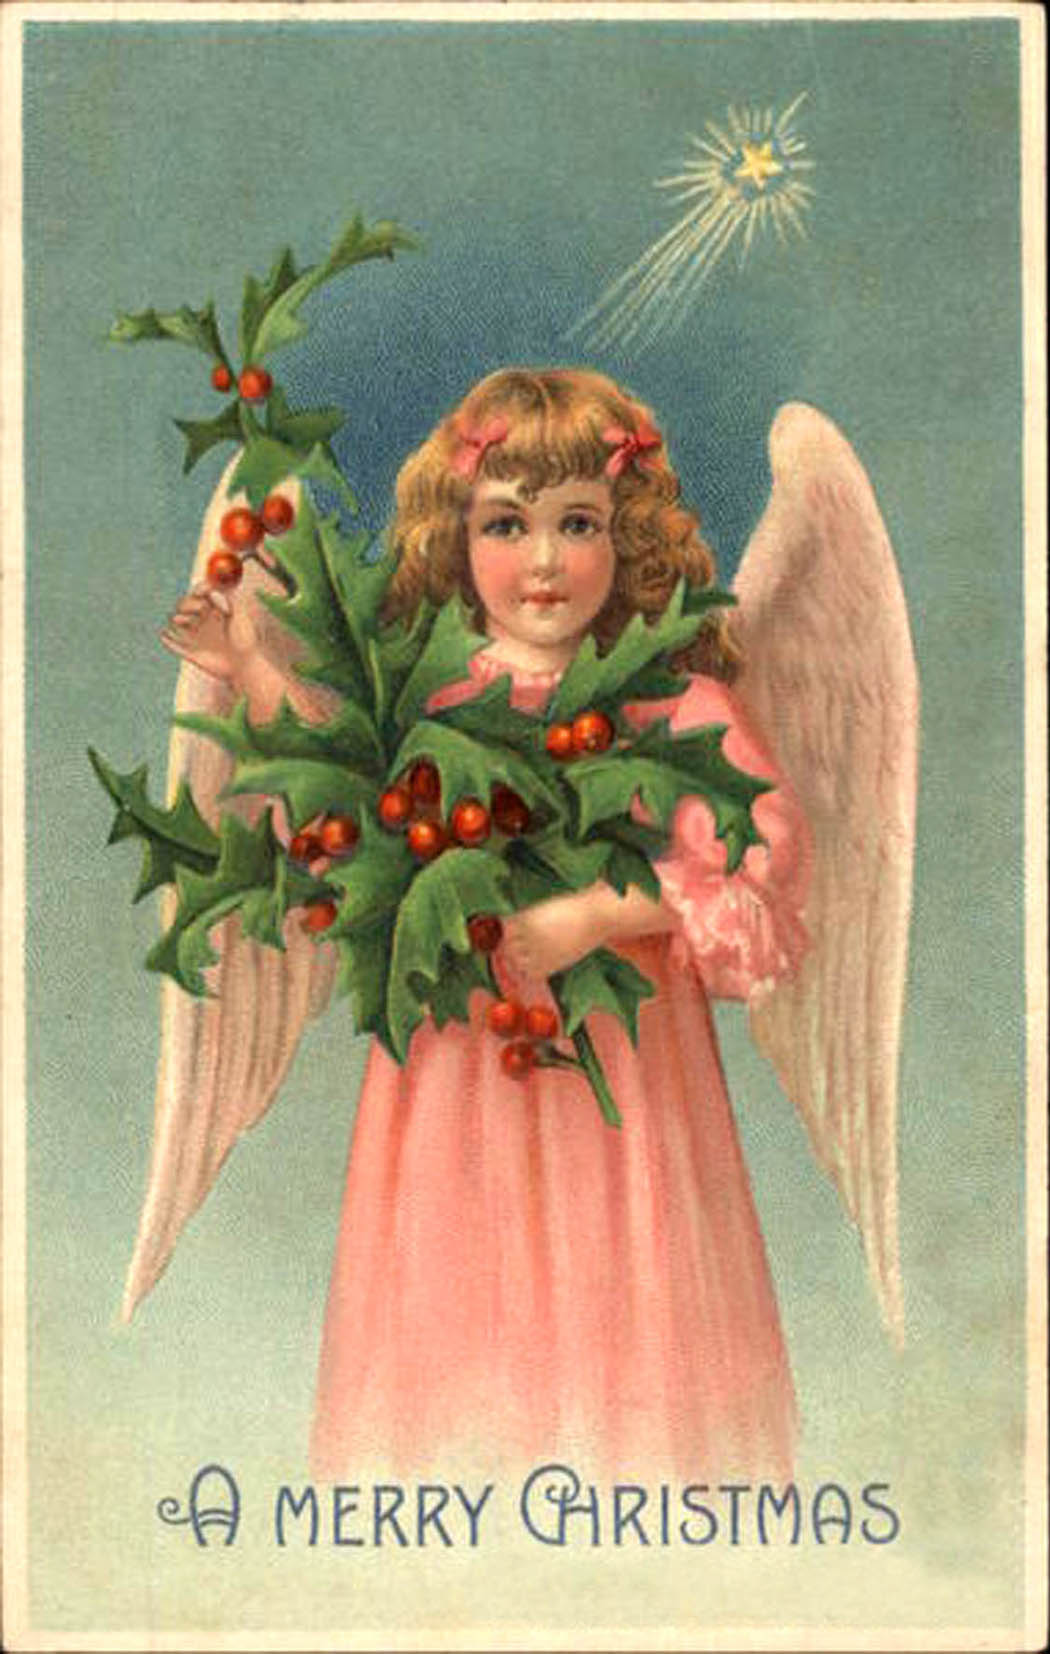 Card Of An Angel Girl In Pink Dress Holding A Holly Branch And Star Shining Down